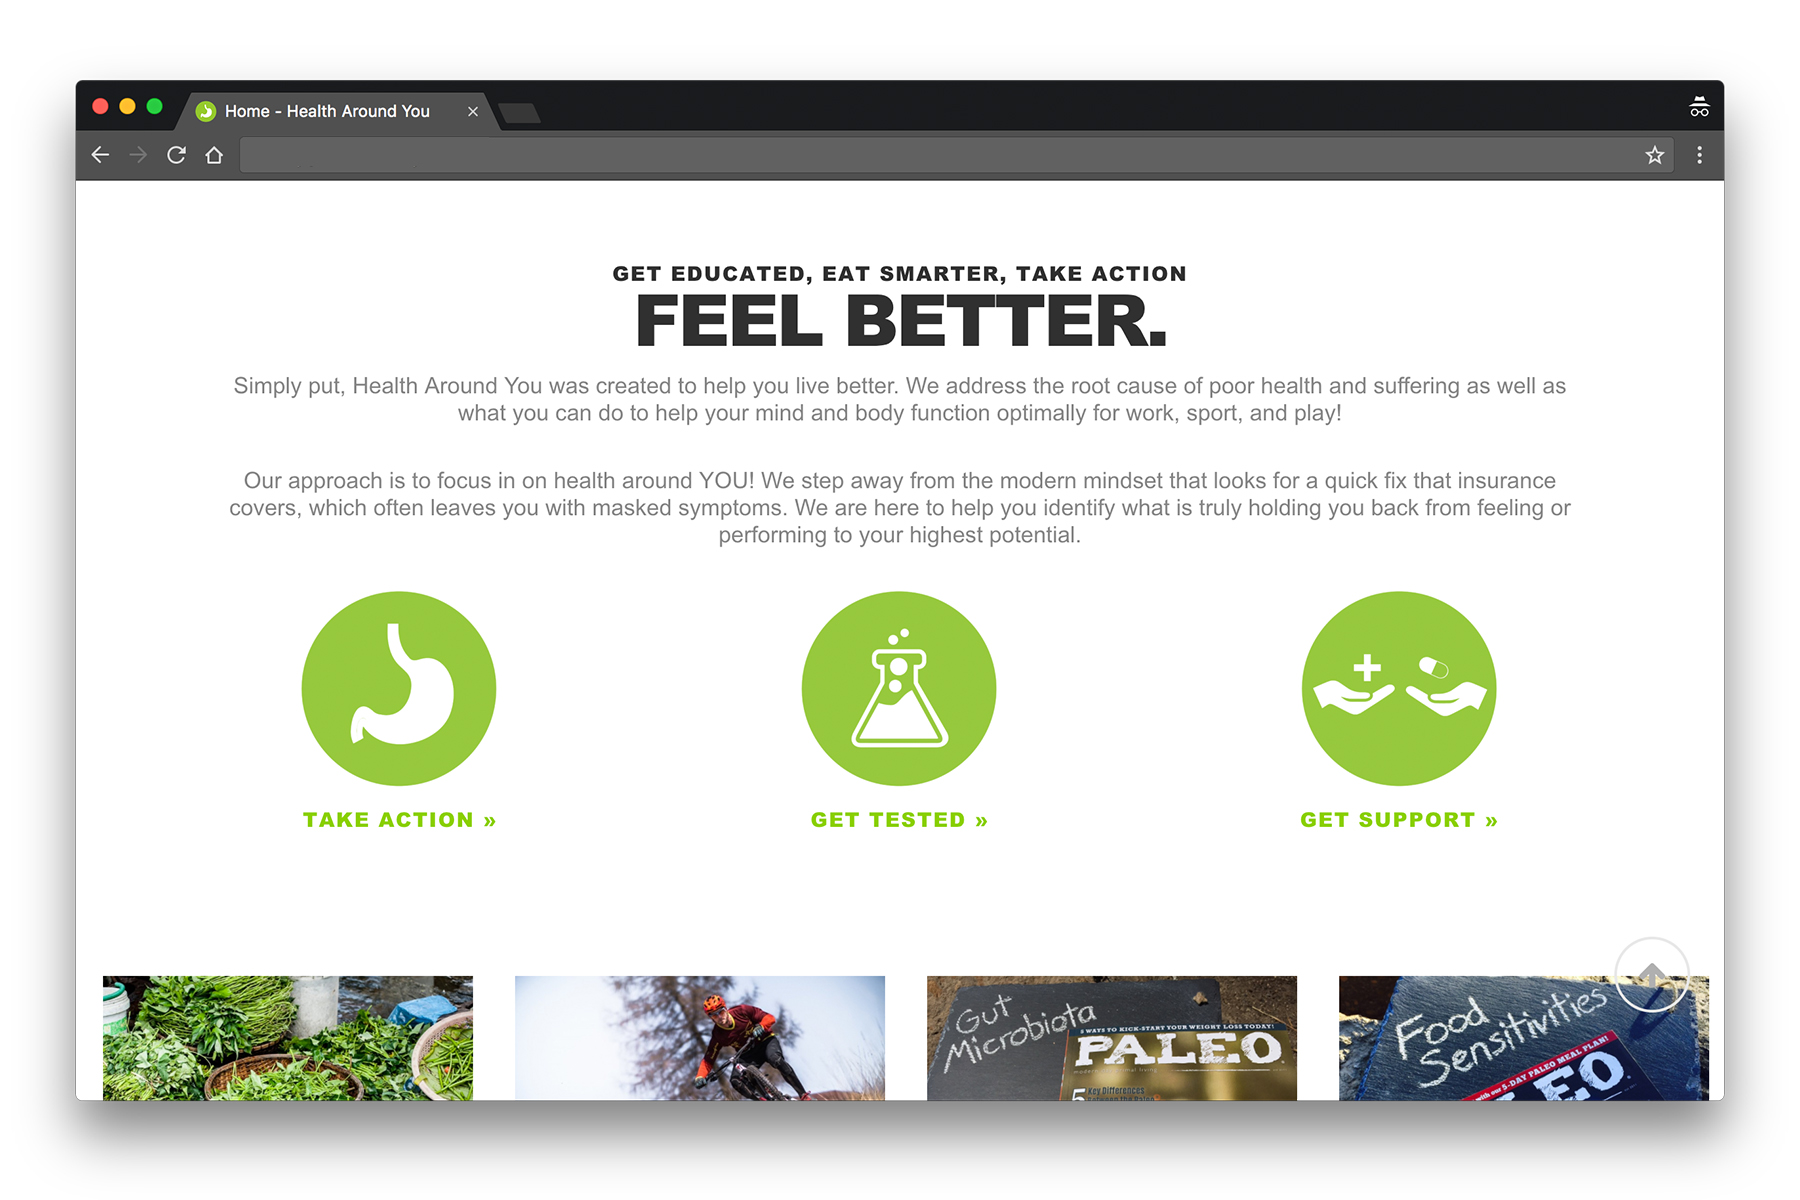 HealthAroundYou-WebsiteDesignProject-Home